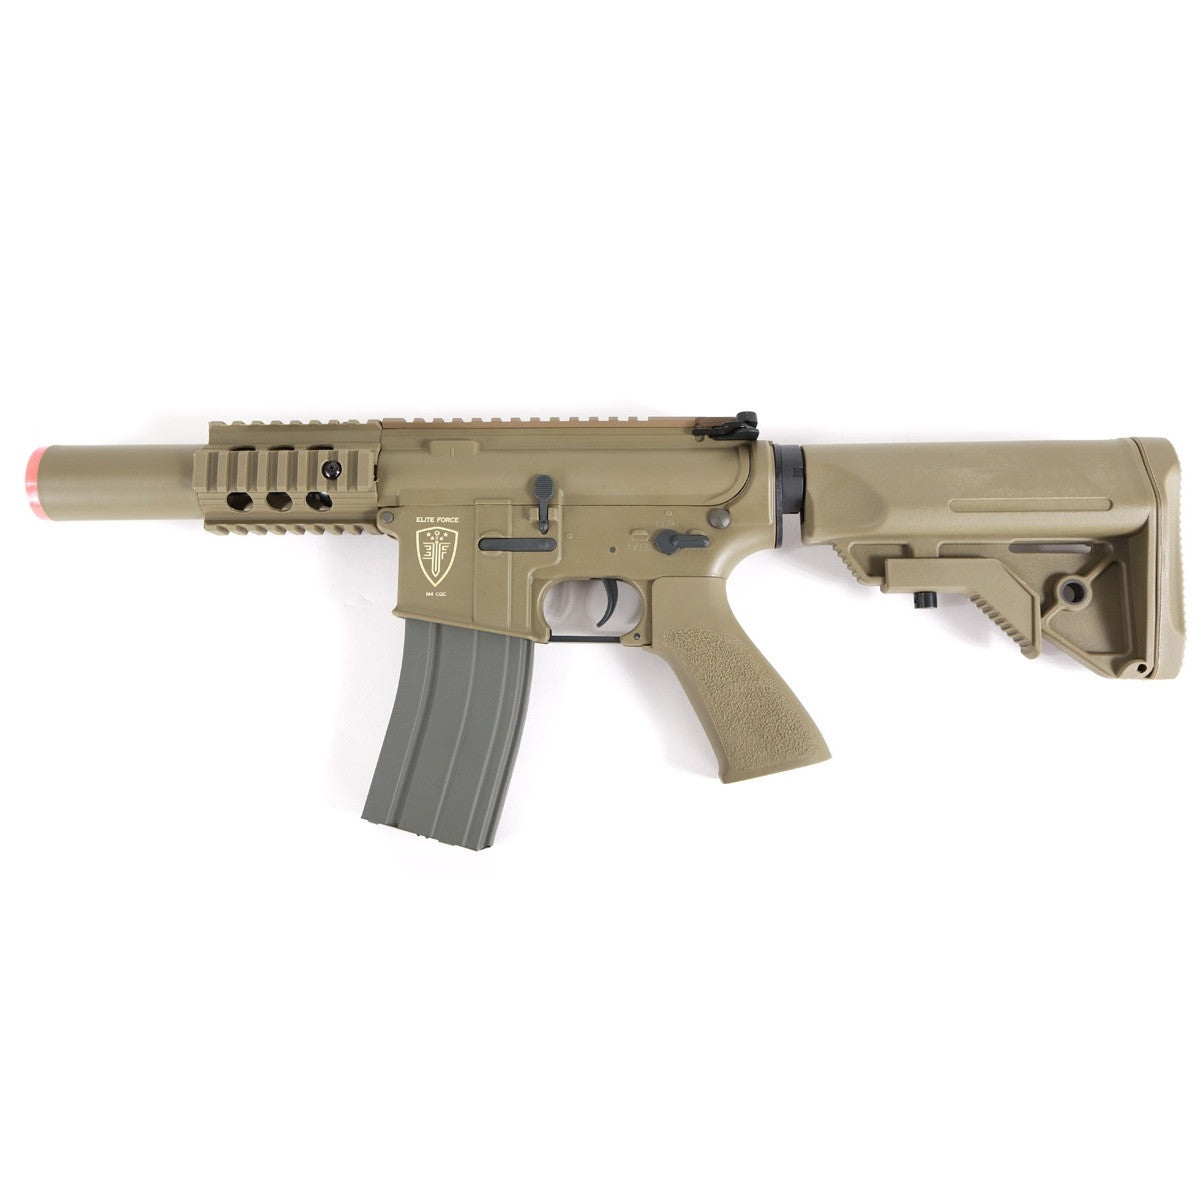 EF M4 CQC -  330 FPS w/.2g BB Fully upgradable High strength Nylon fiber receiver Metal quadrail, barrel, mock suppressor Metal Gears/ Metal Gearbox Adjustable Hop-up Crane Stock Hi-Cap Mag 300rds